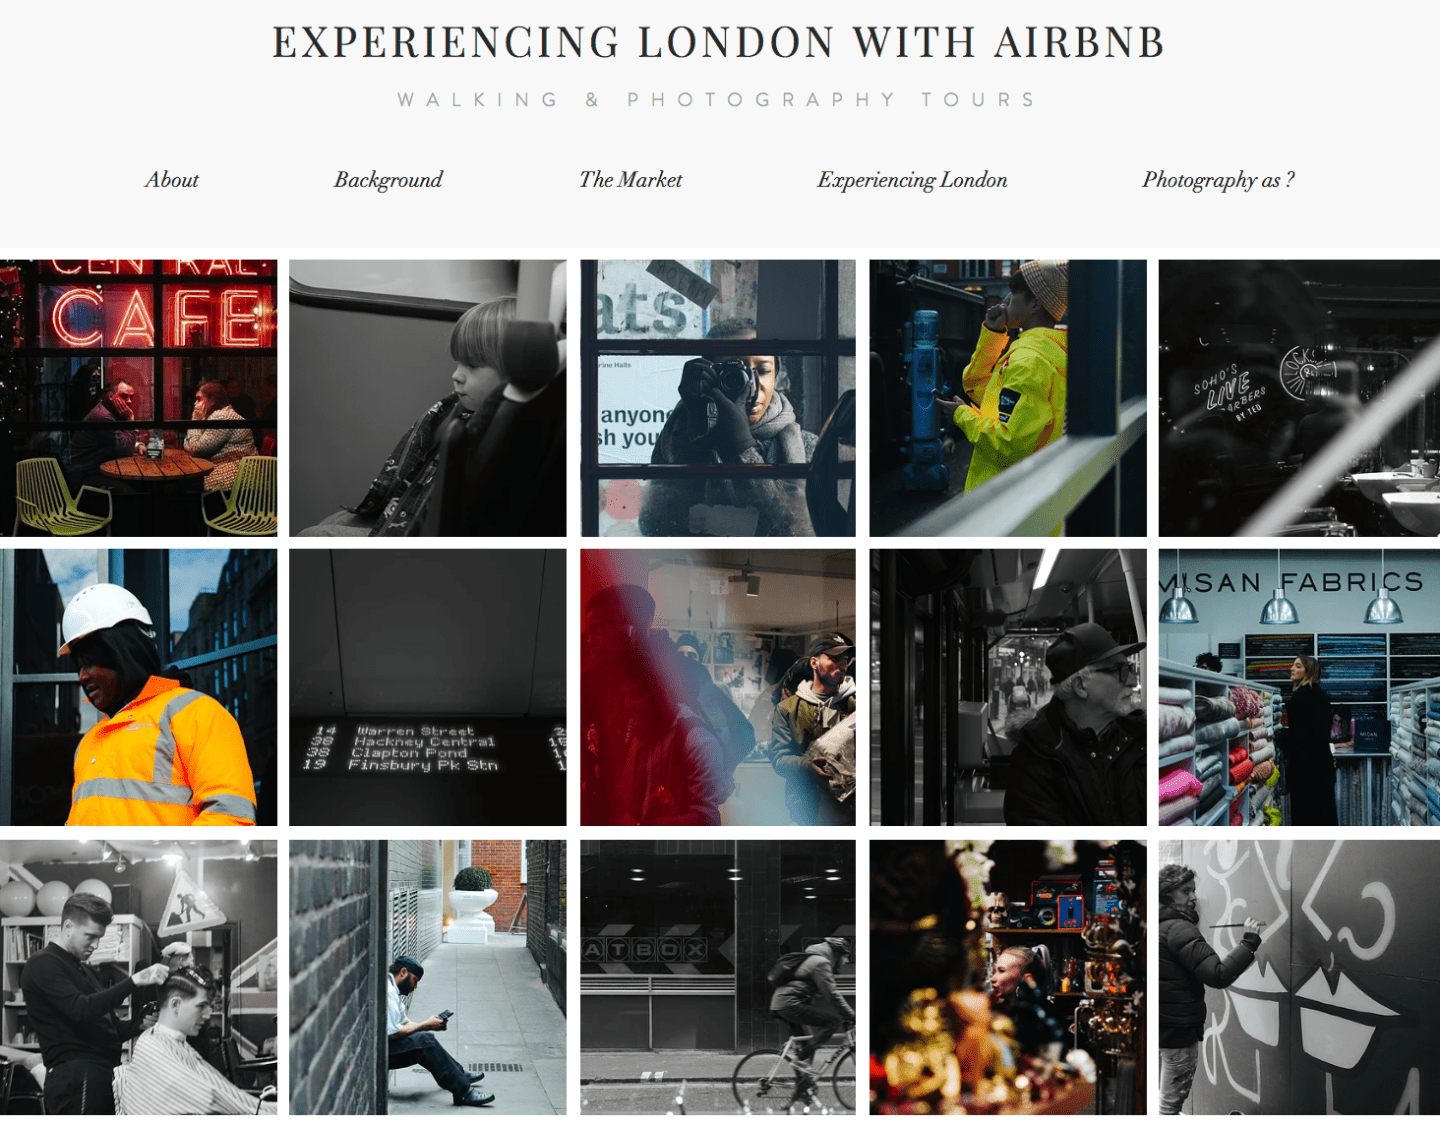 Experiencing London with Airbnb